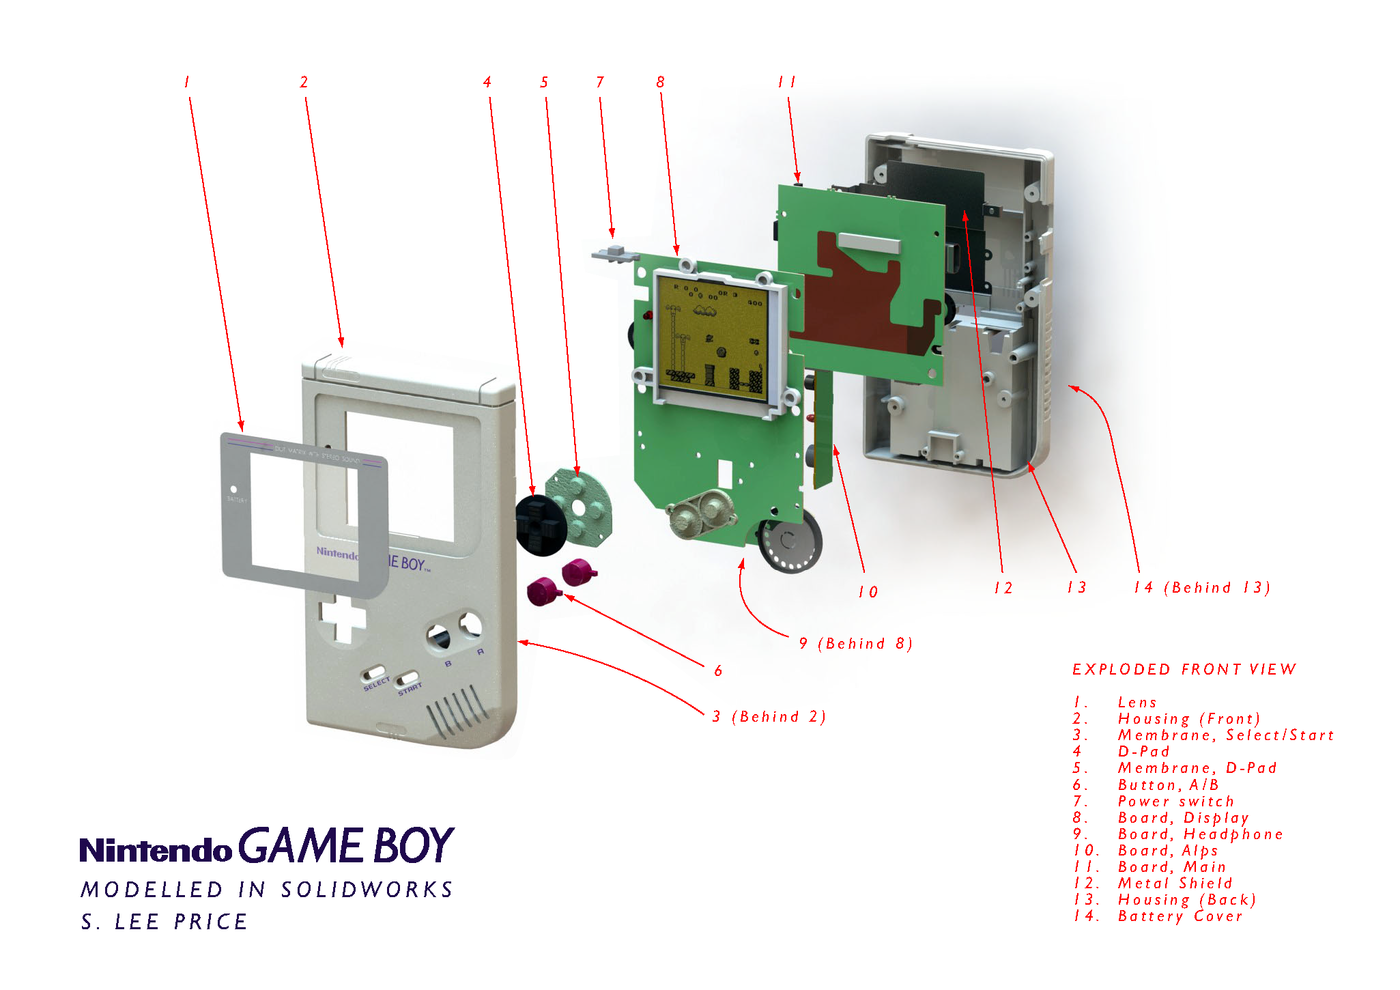 Game Boy - SolidWorks Model by S  Lee Price at Coroflot com